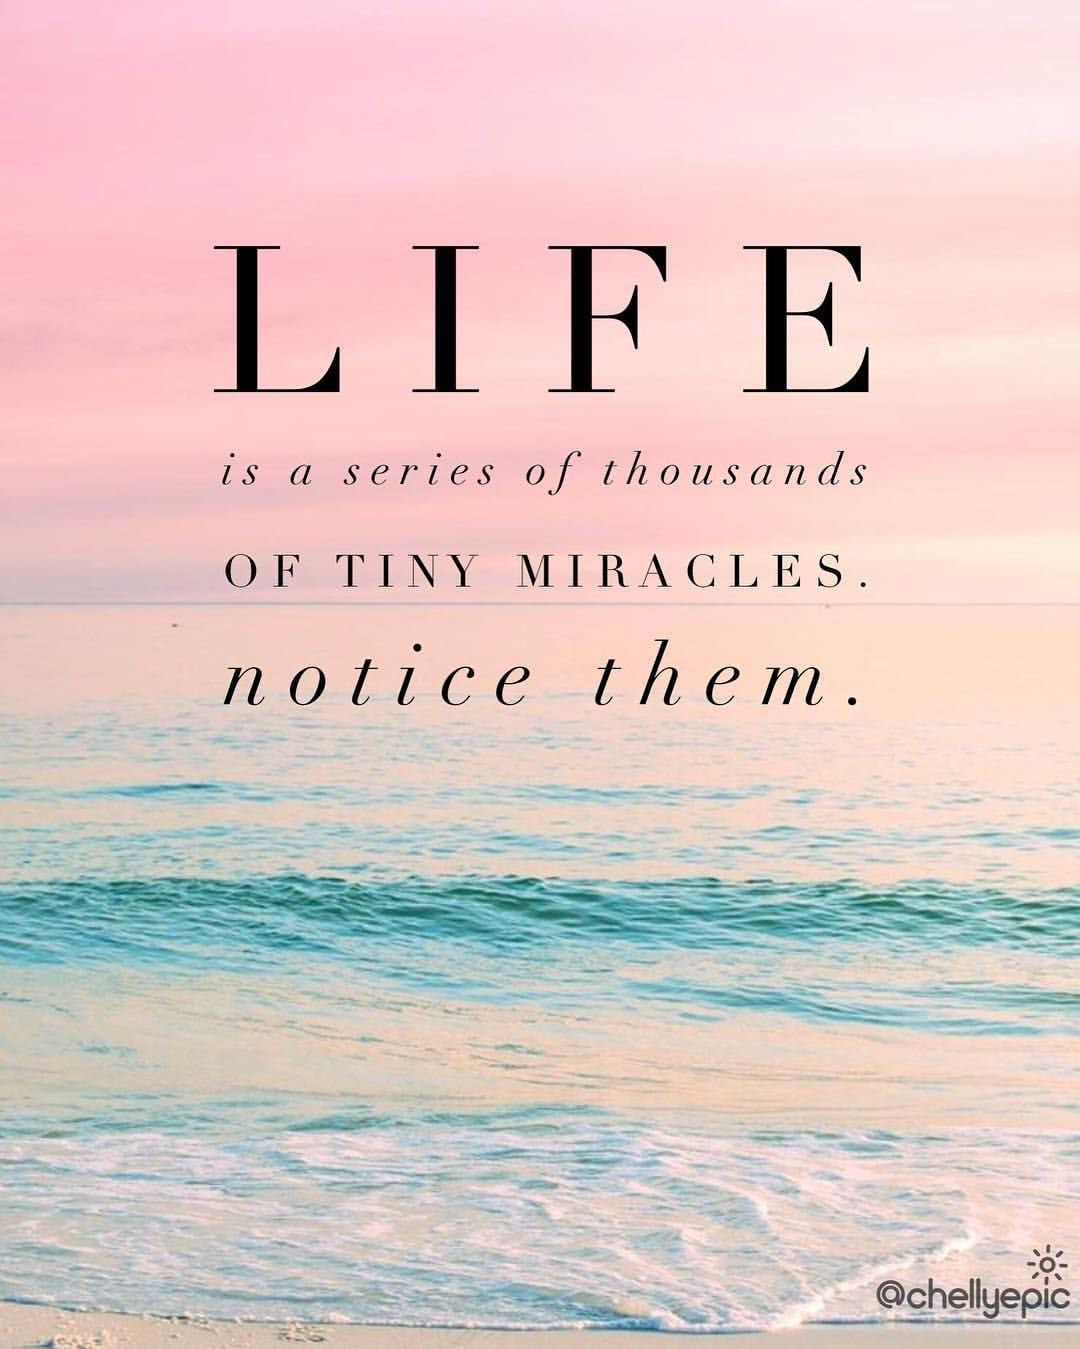 Life Is A Series Of Thousands Of Tiny Miracles Notice Them Chellyepic Miracle Quotes Words Positive Quotes Life Is a Miracle